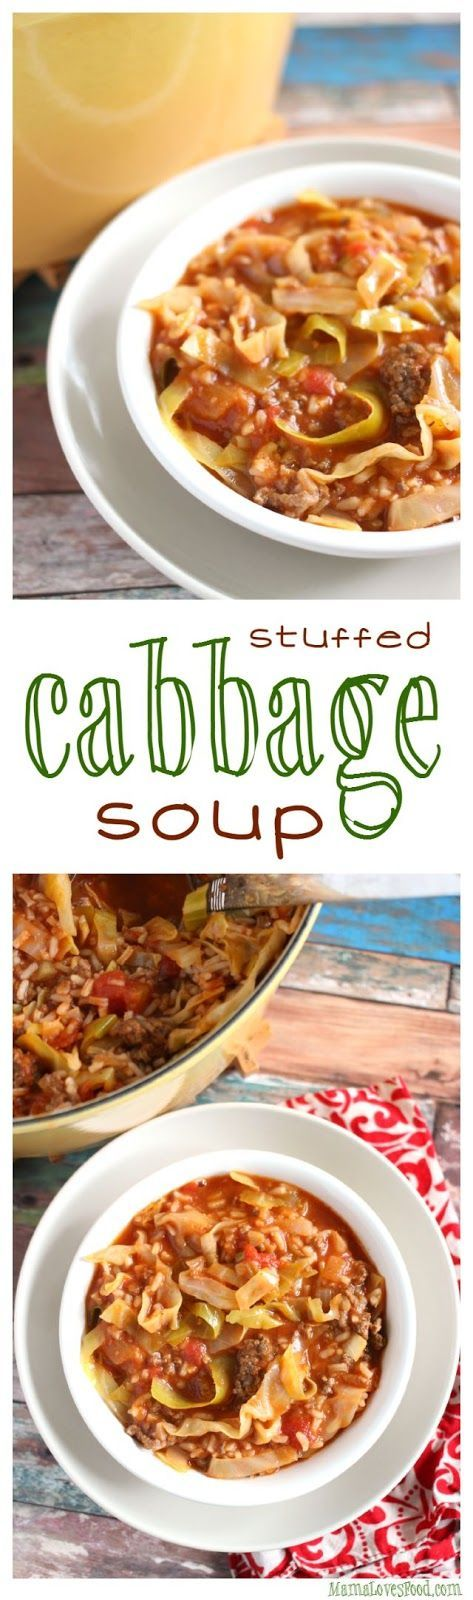 Stuffed Cabbage Soup! There is nothing like warm comfort food recipes when the fall weather starts getting cold. I can't wait to make this meal for dinner!